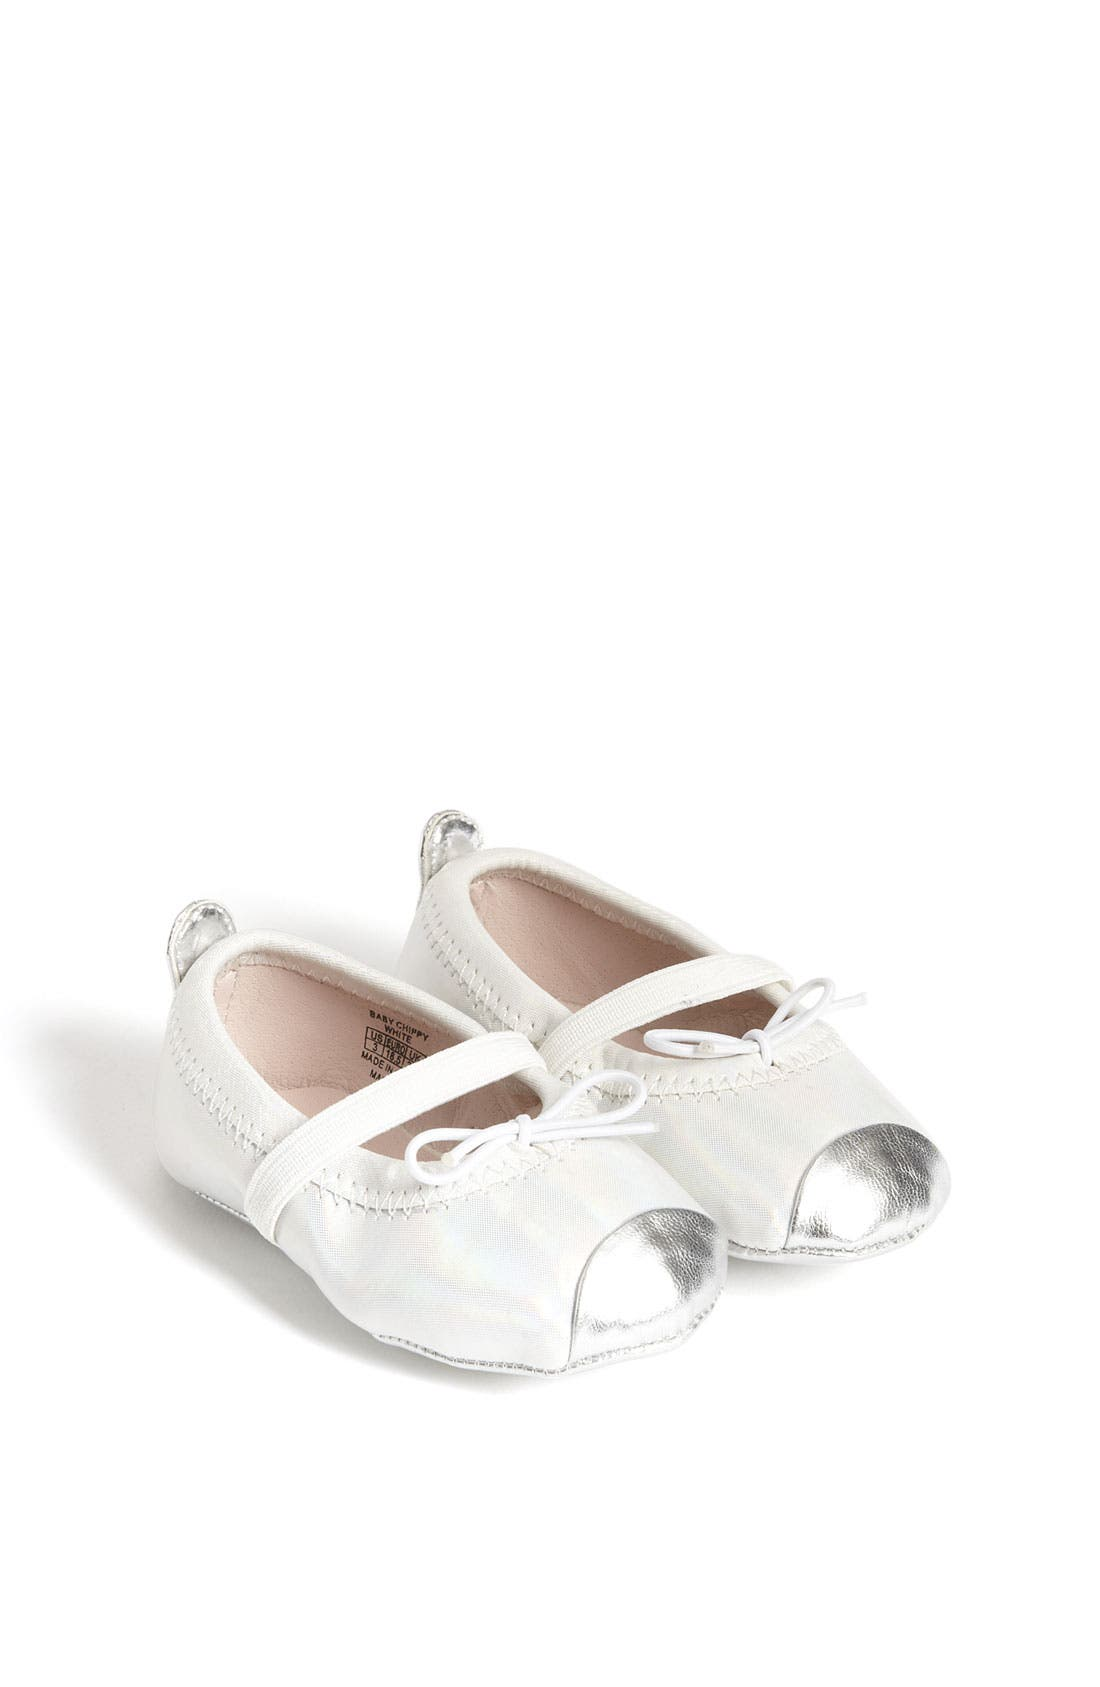 Main Image - Stuart Weitzman 'Baby Chippy' Crib Shoe (Baby)